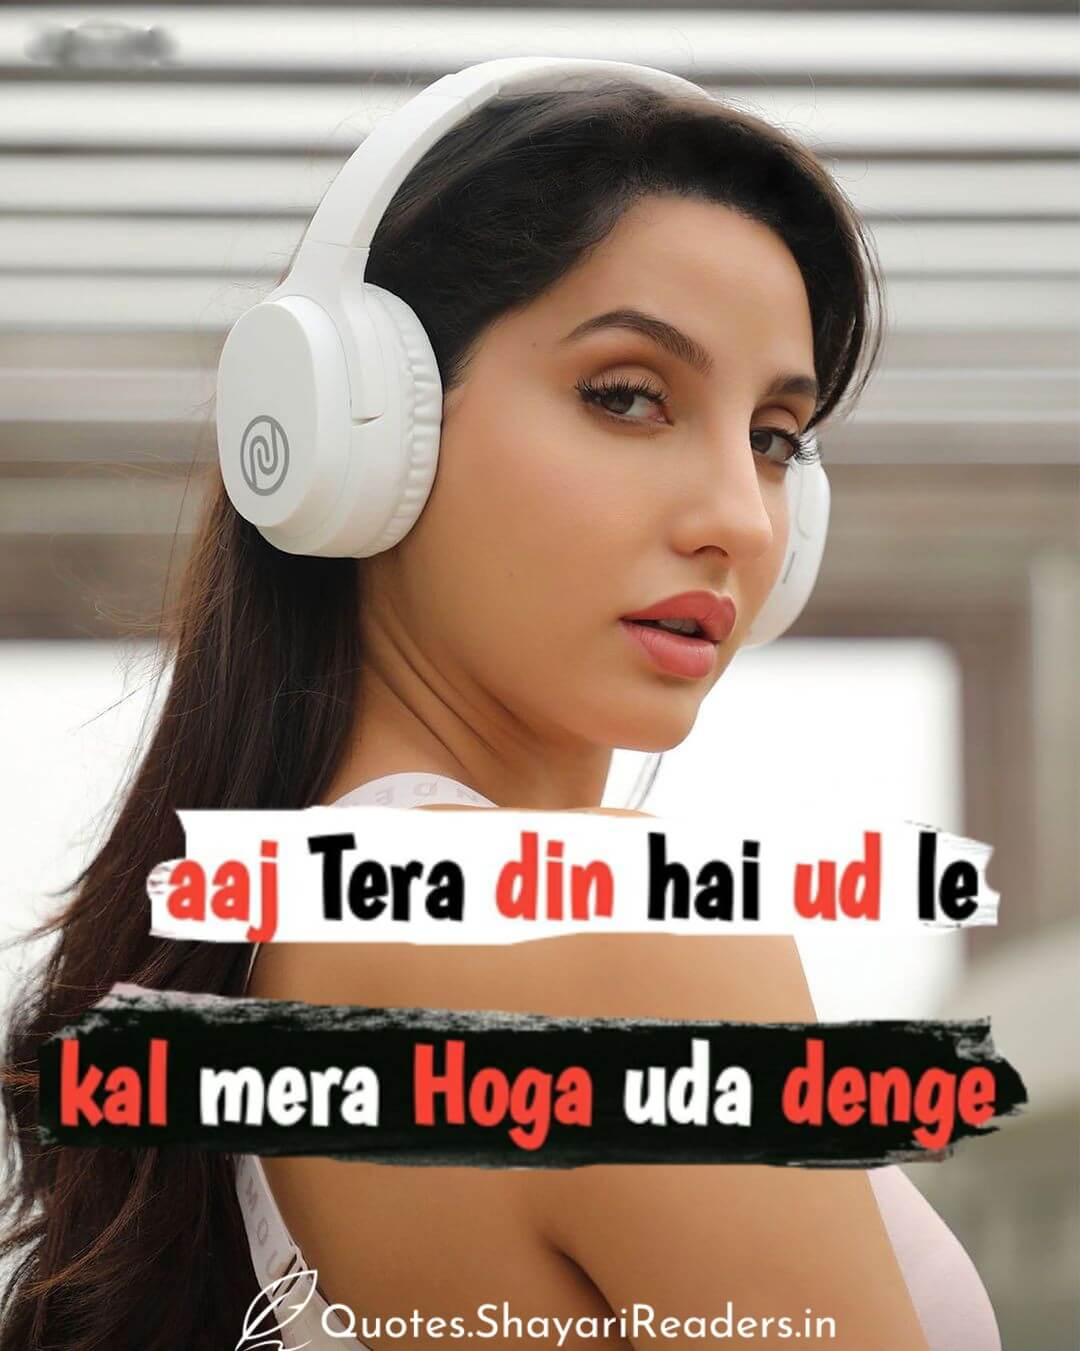 Attitude Quotes In Hindi For Girl Images